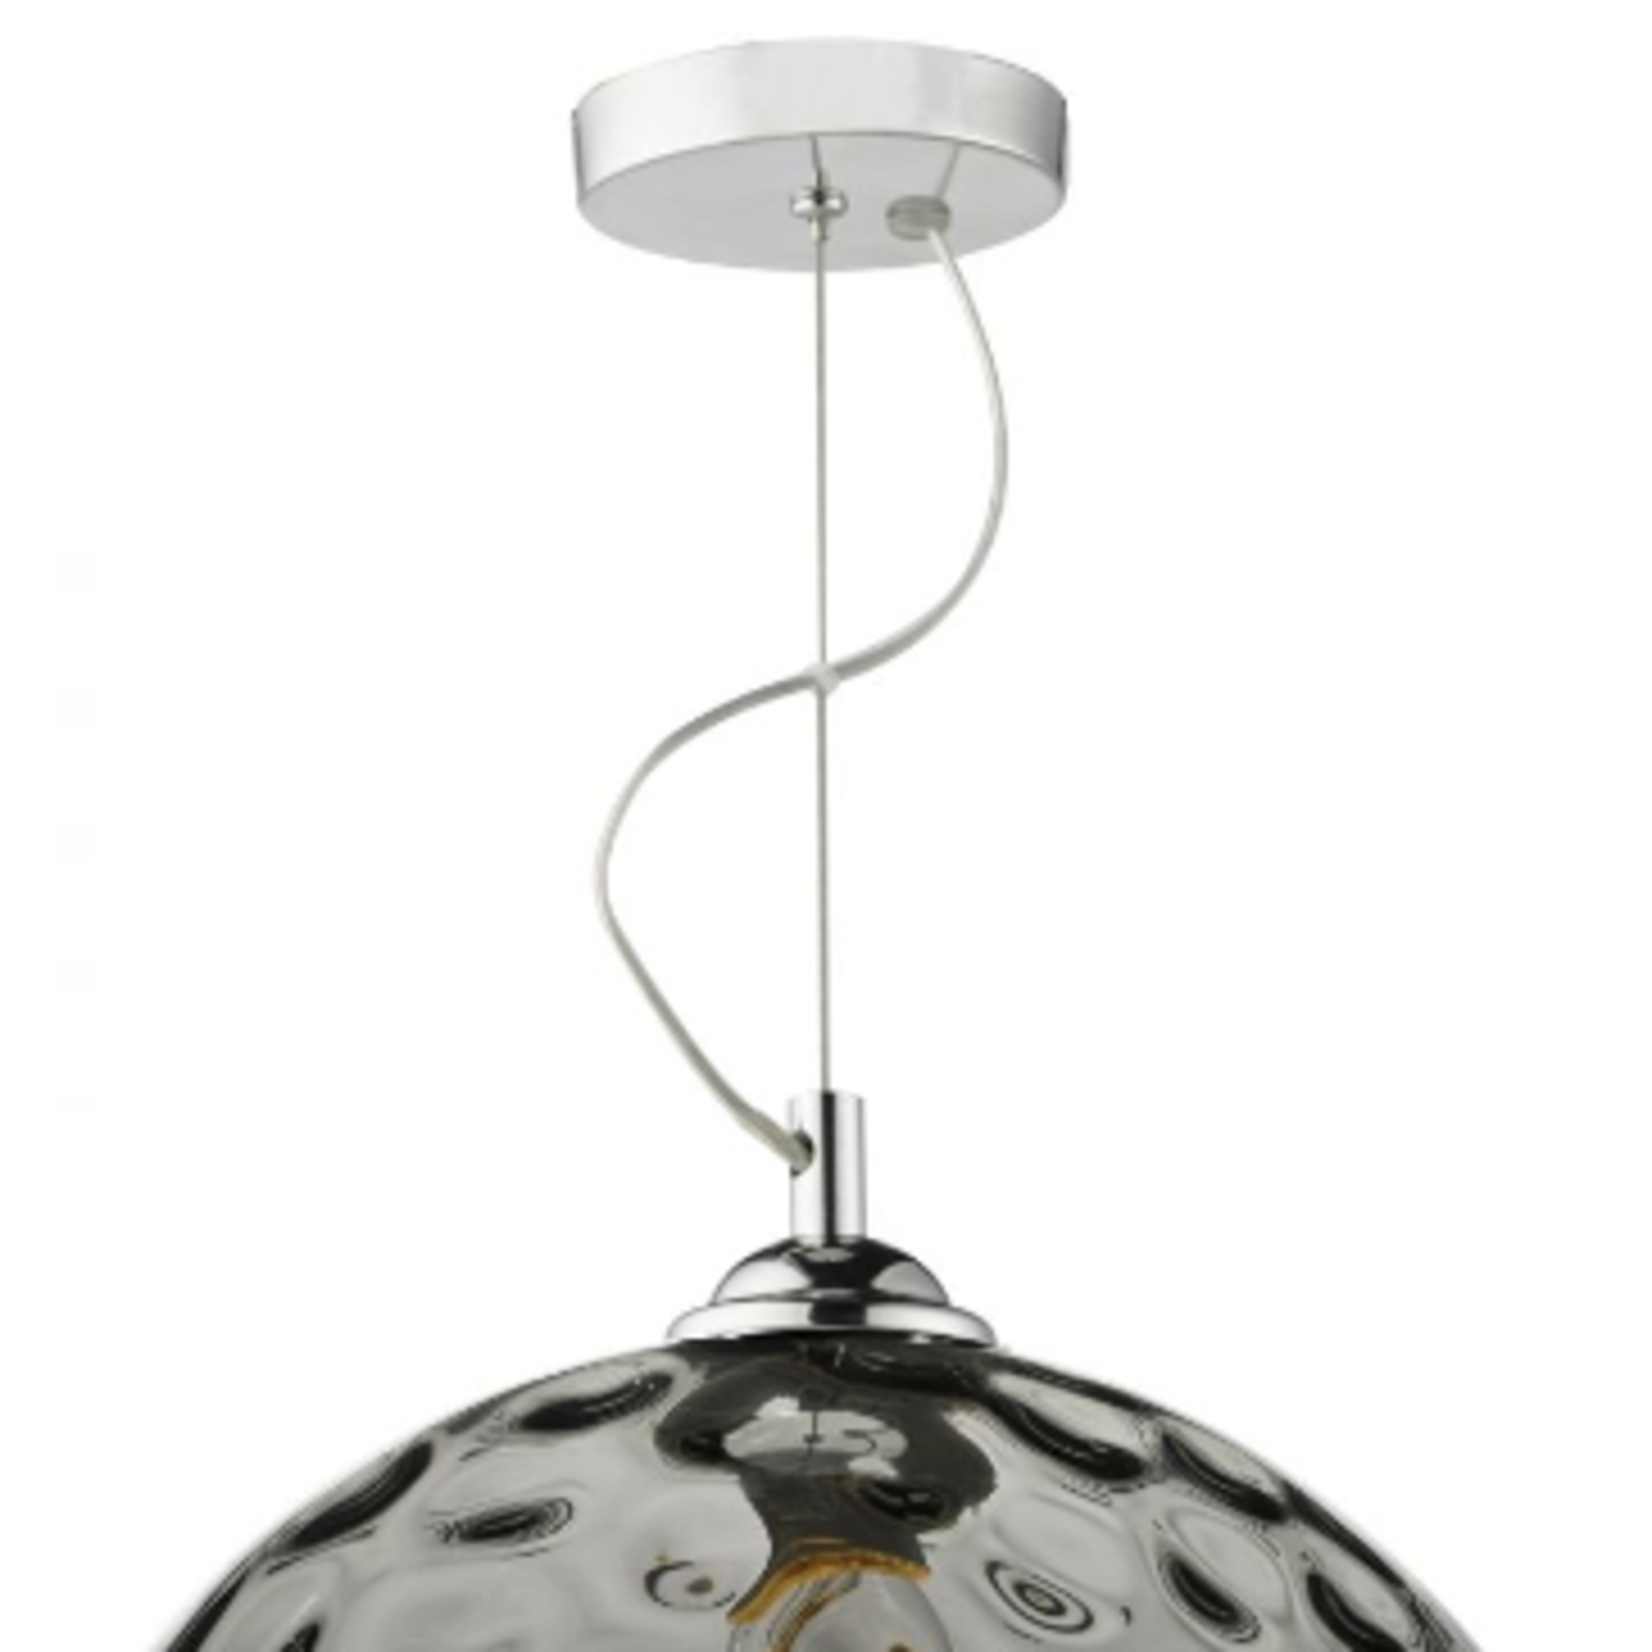 DAR Aulax Pendant Silver chrome & Smoked Glass With Dimple Effect Glass aprox 30x30cm